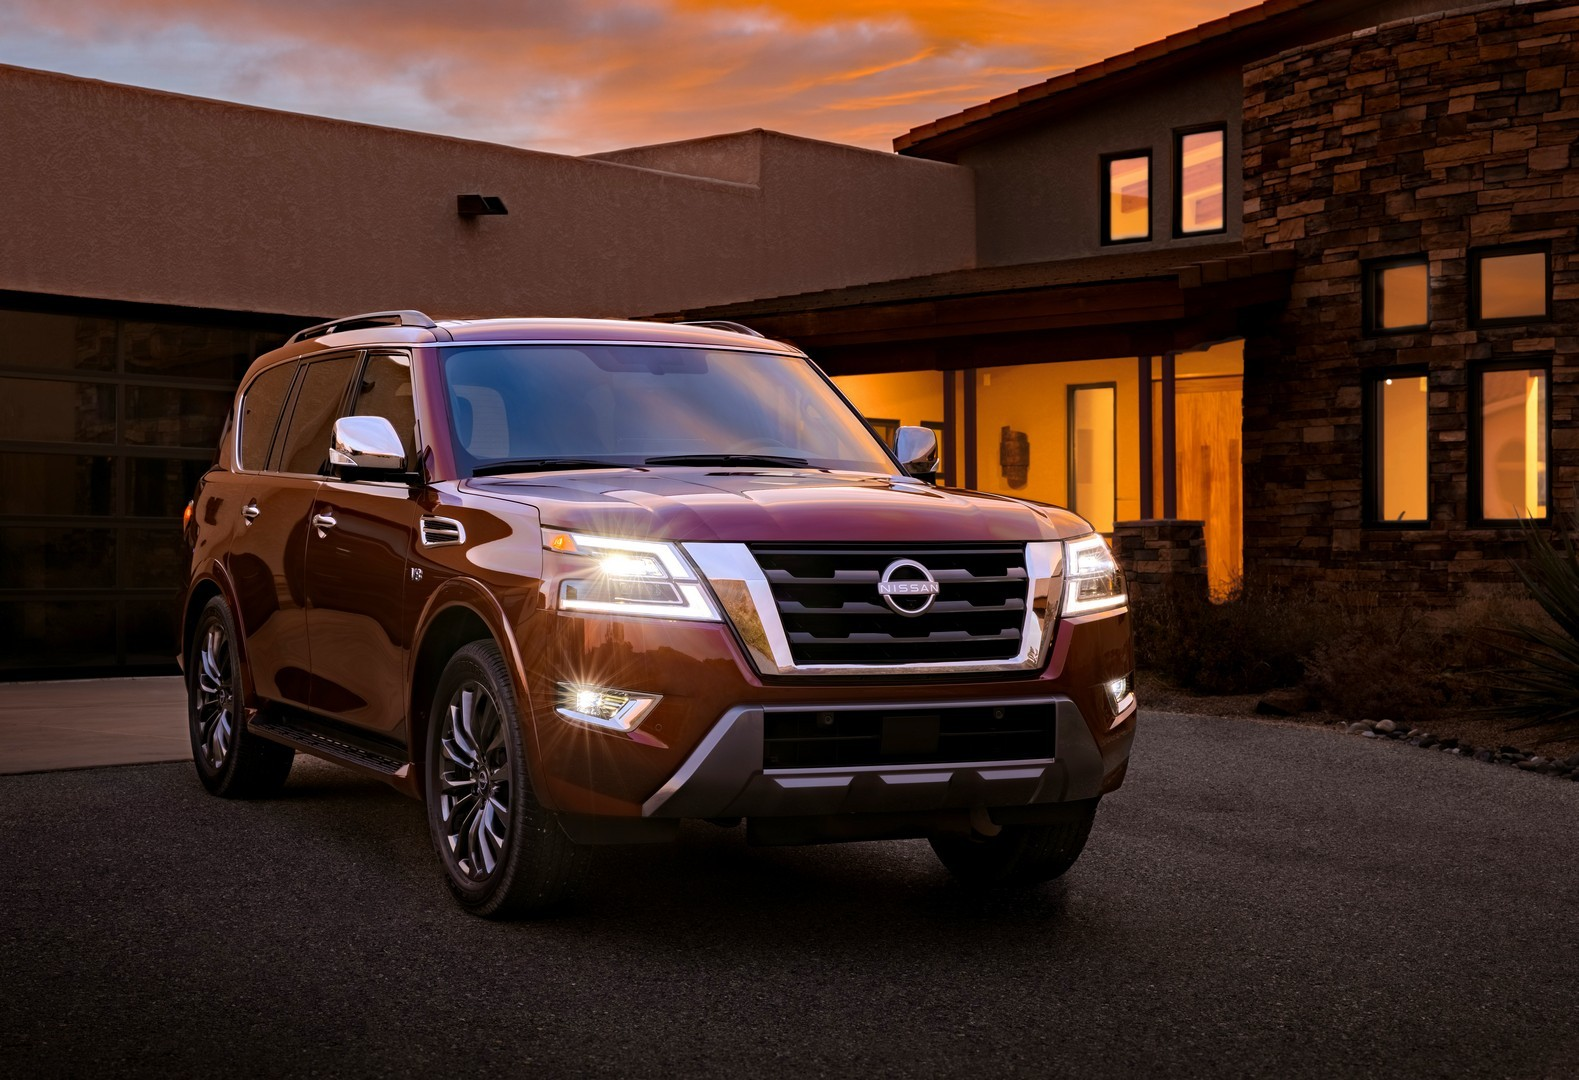 2021 nissan armada arrives stateside with an array of